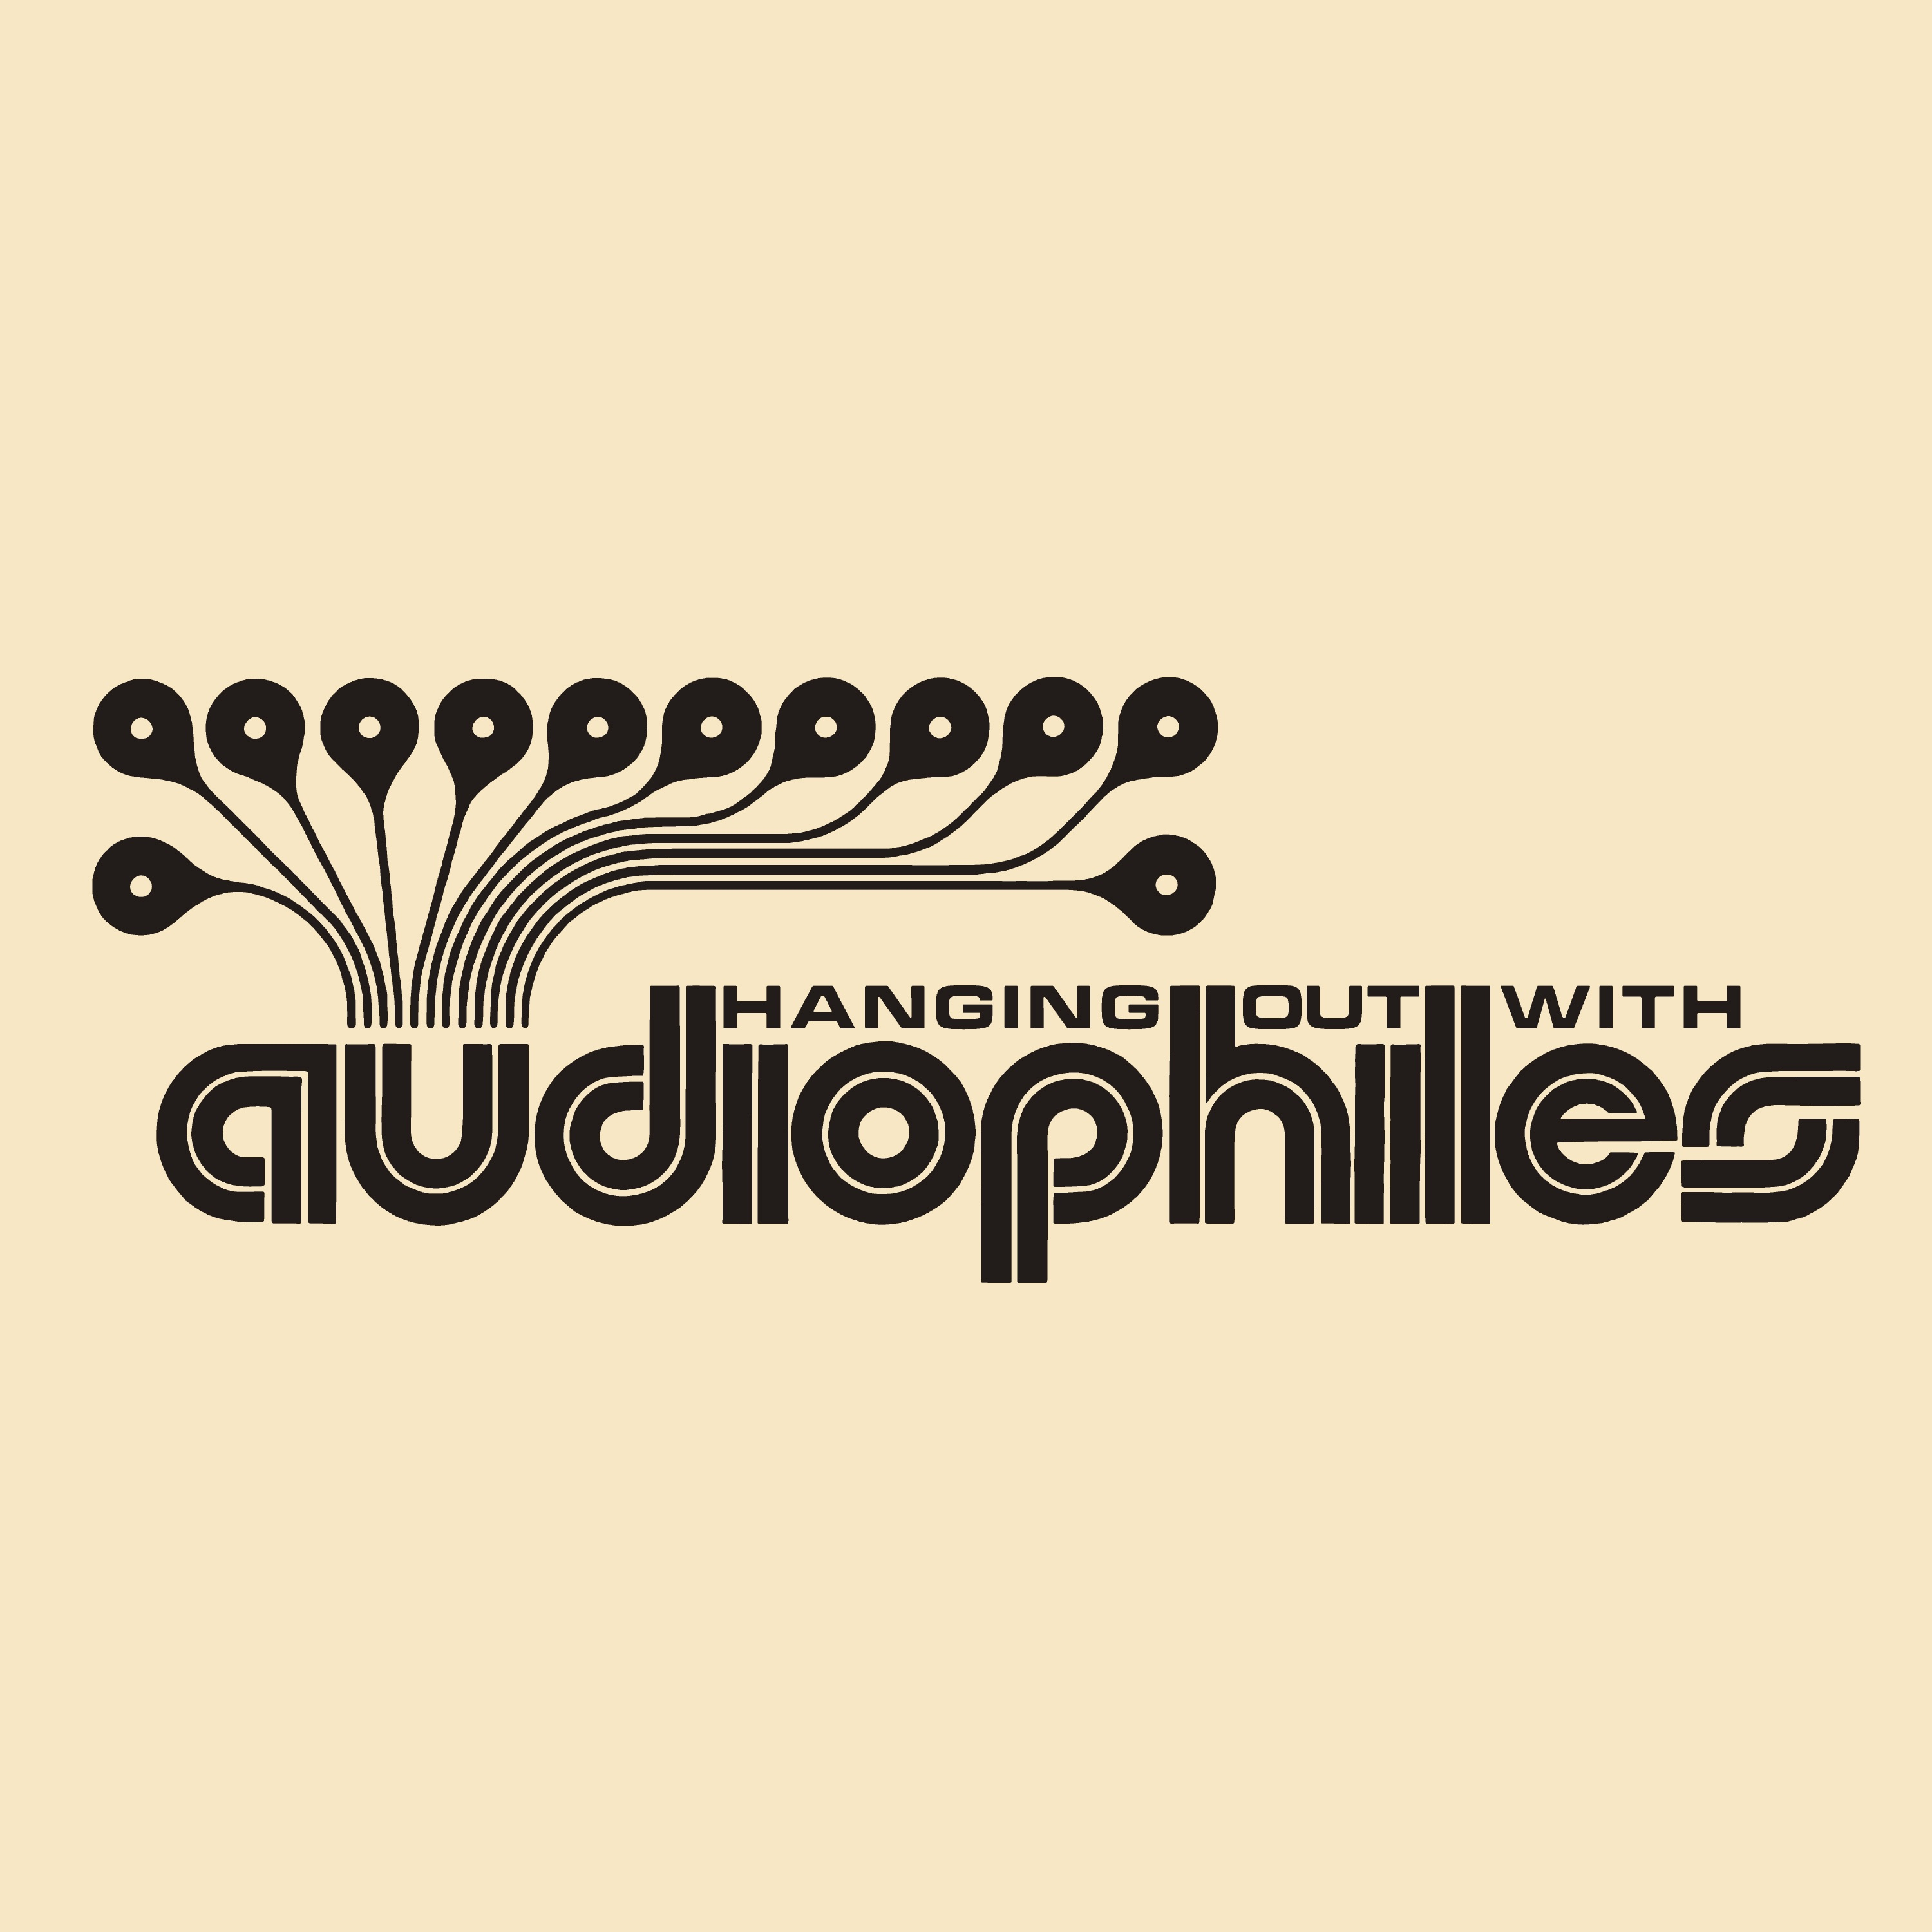 hanging out with audiophiles | Podbay